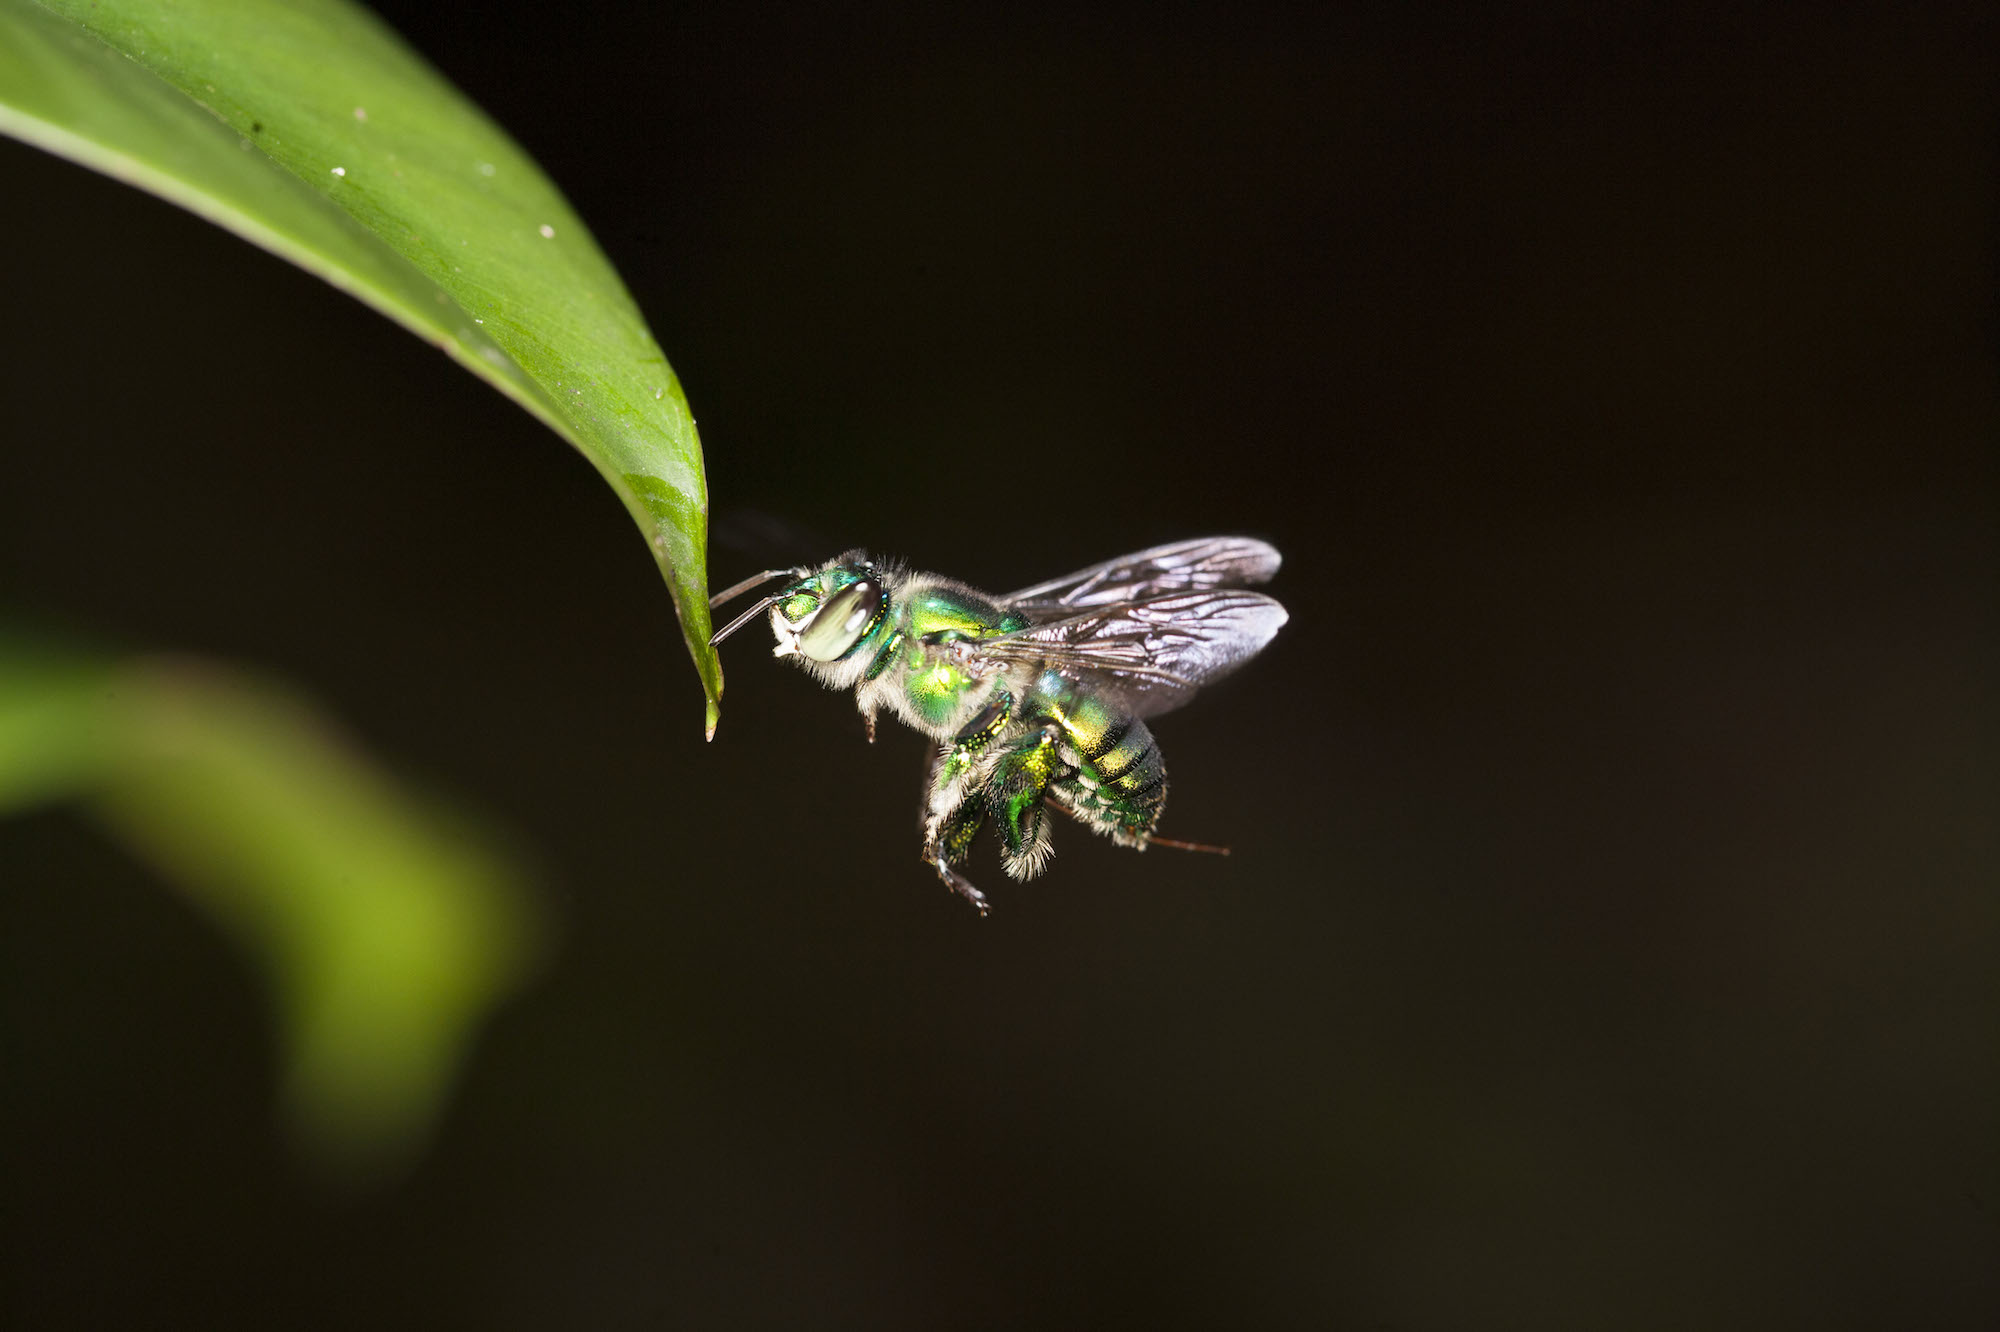 Insect Eyes Enable Drones to Fly Independently - R&D - Maintworld